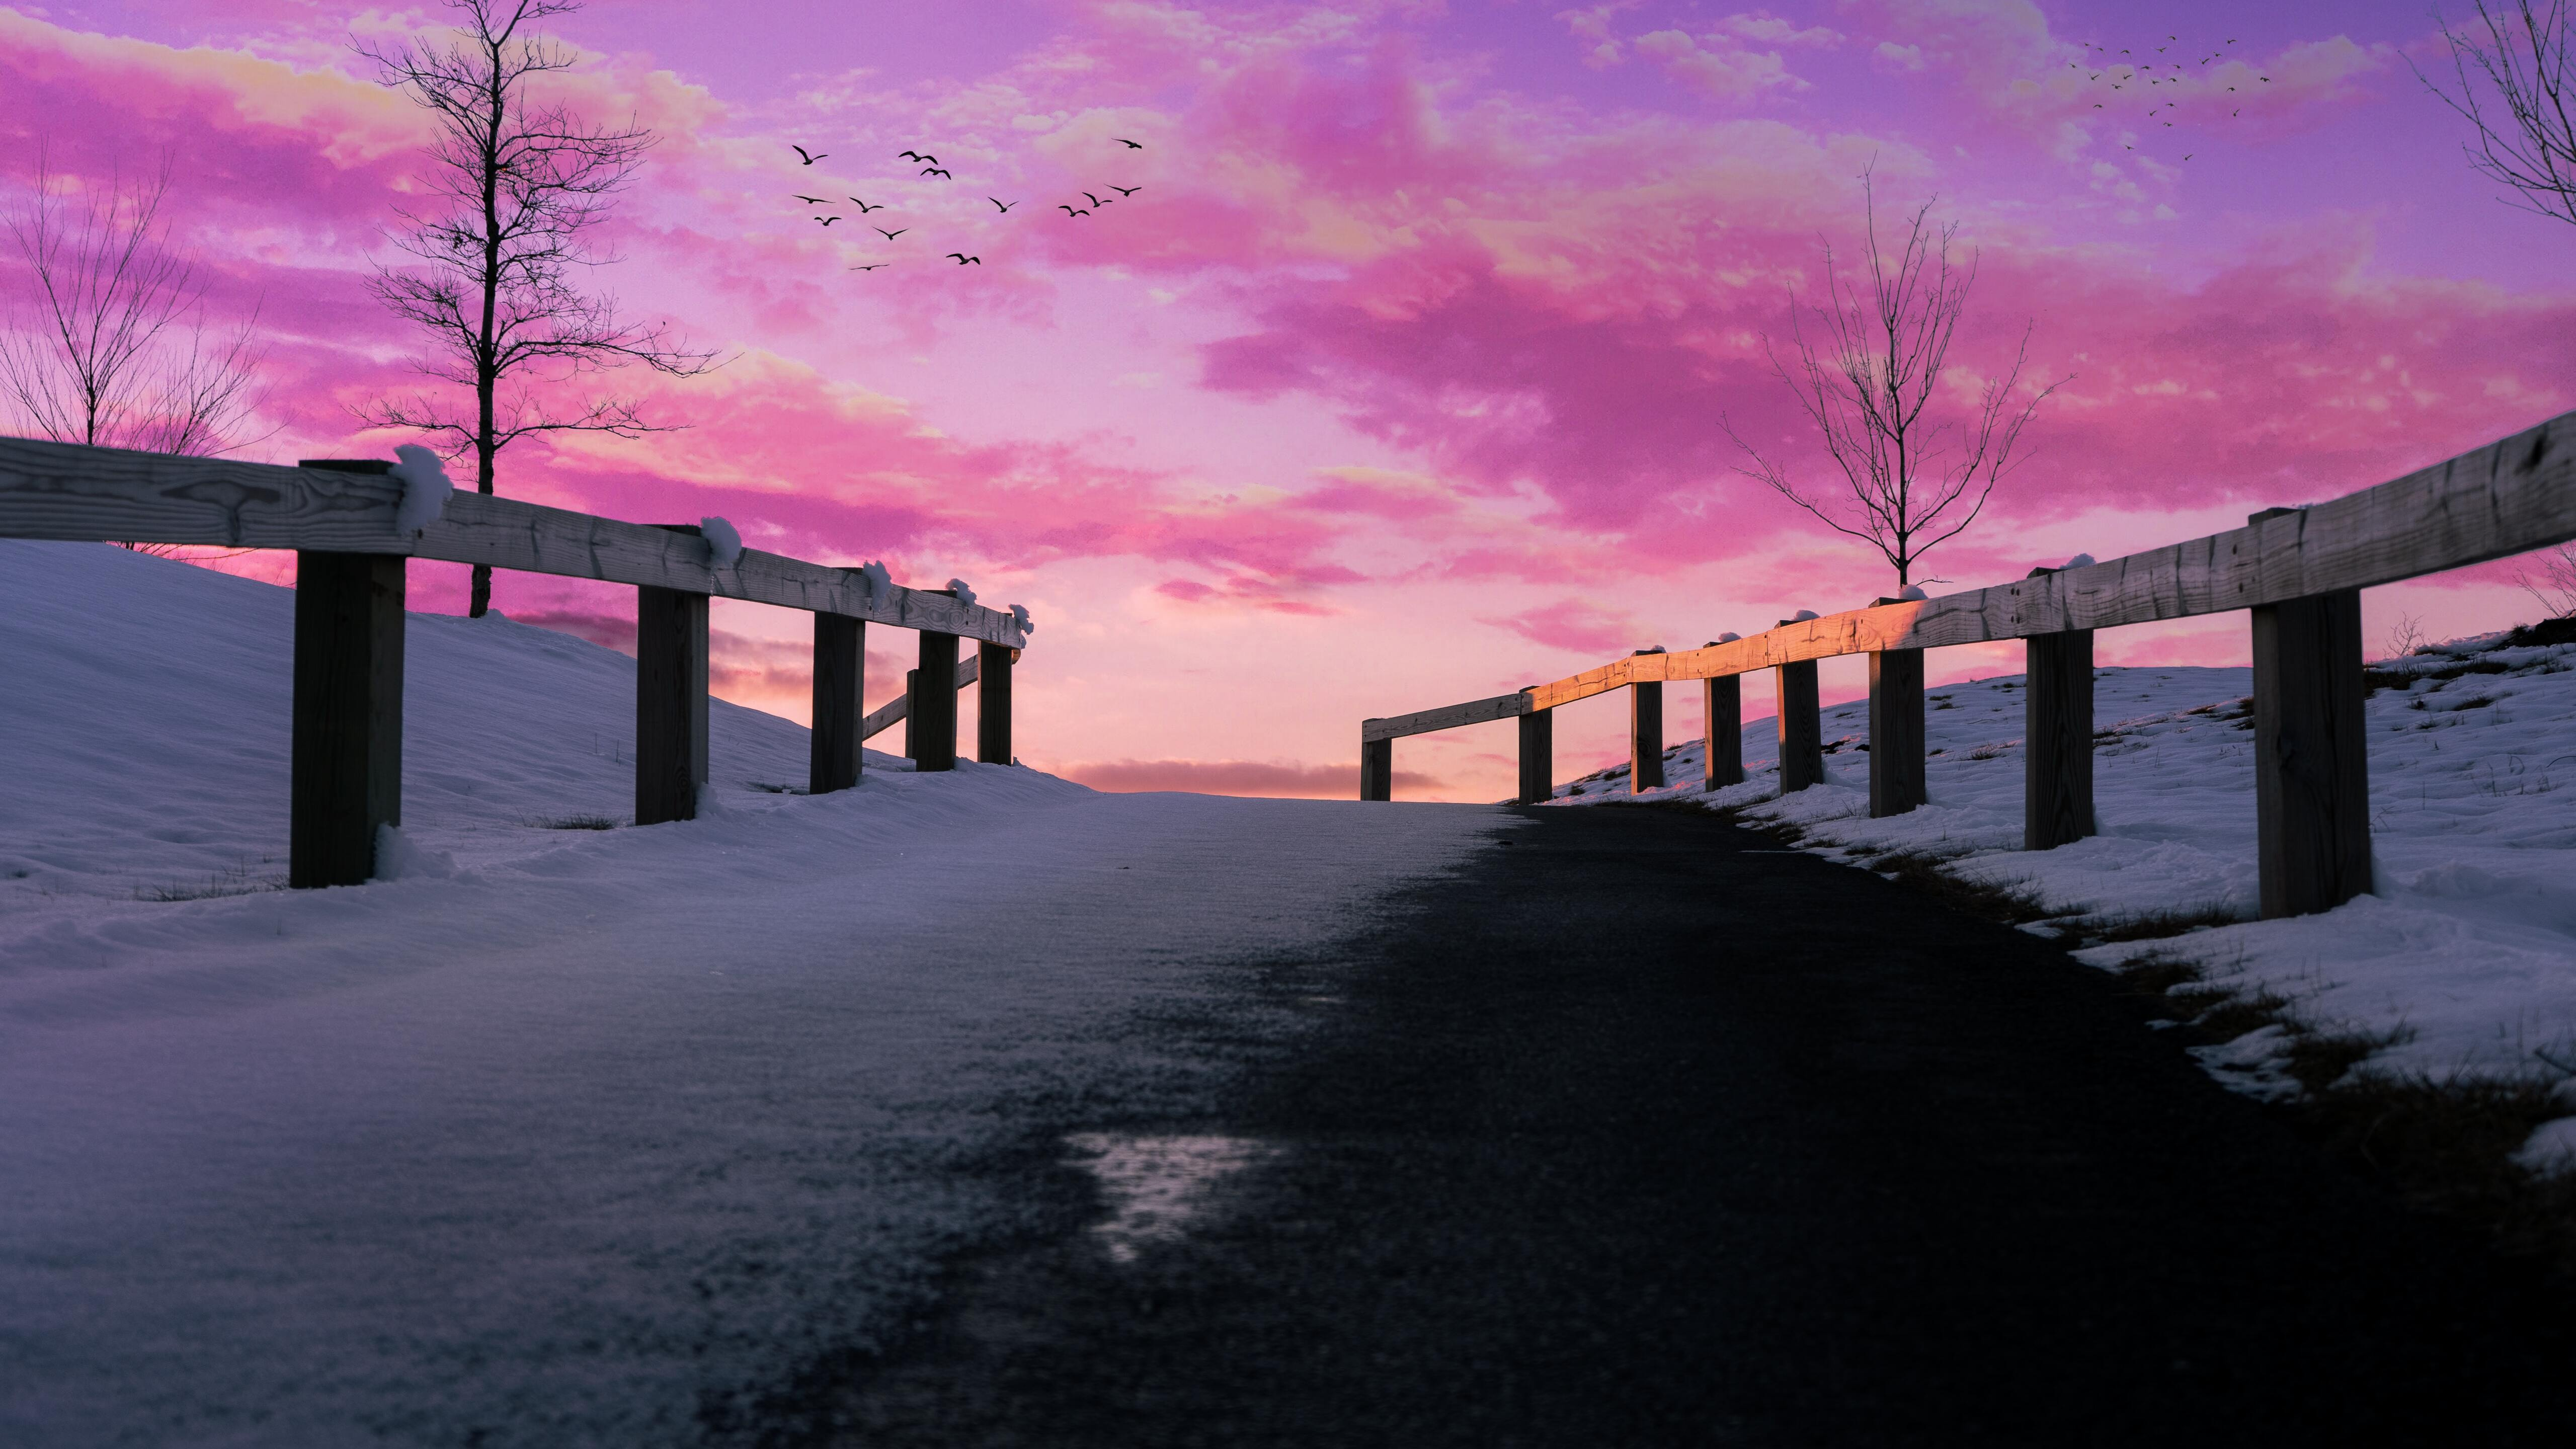 5120x2880 Aesthetics Pink Pink Sky 5k 5k Hd 4k Wallpapers Images Backgrounds Photos And Pictures